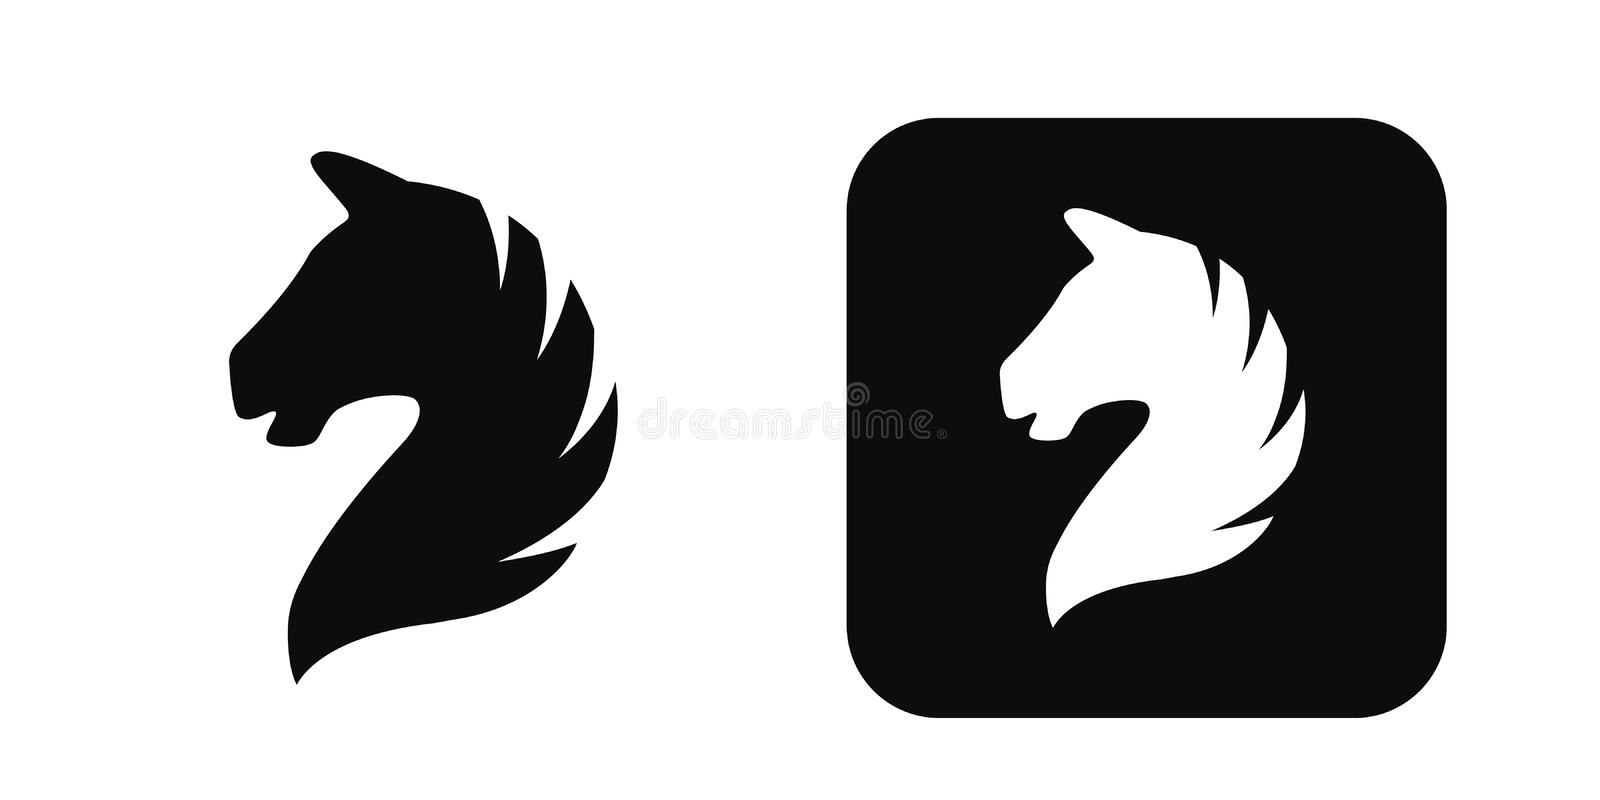 Horse head vector icon isolated on white. Horse head logo. Horse head silhouette vector illustration